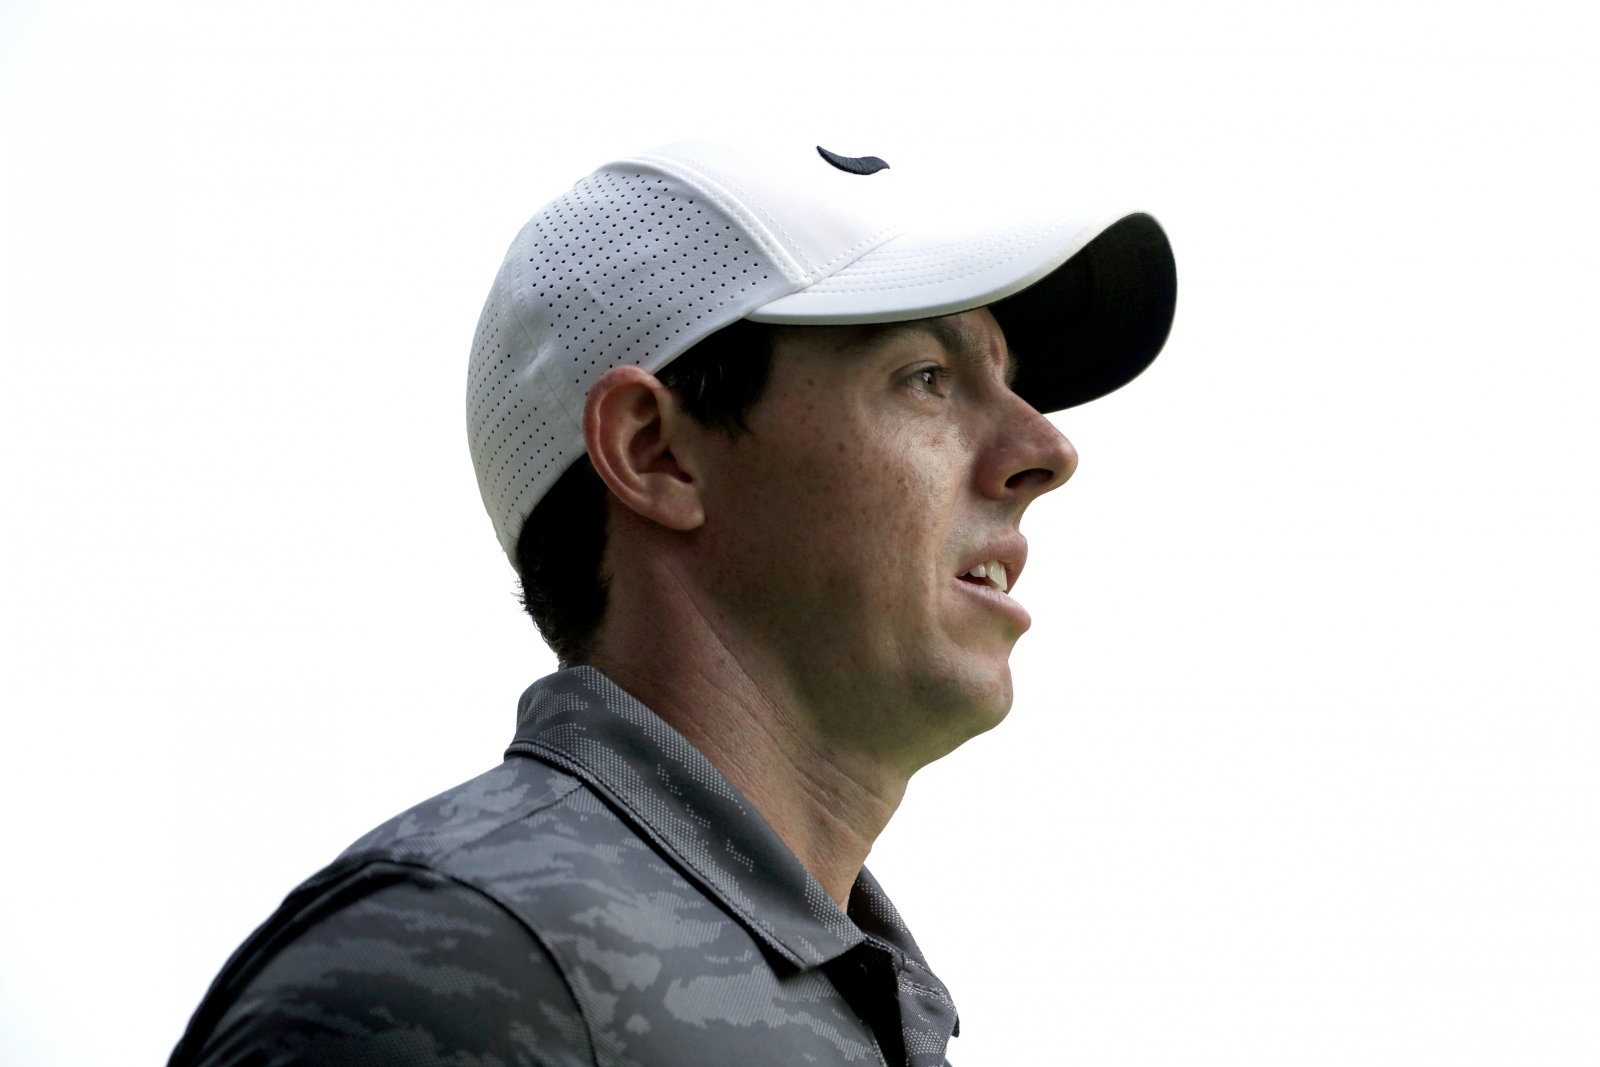 McIlroy calls Muirfield's delay in allowing women members 'obscene'